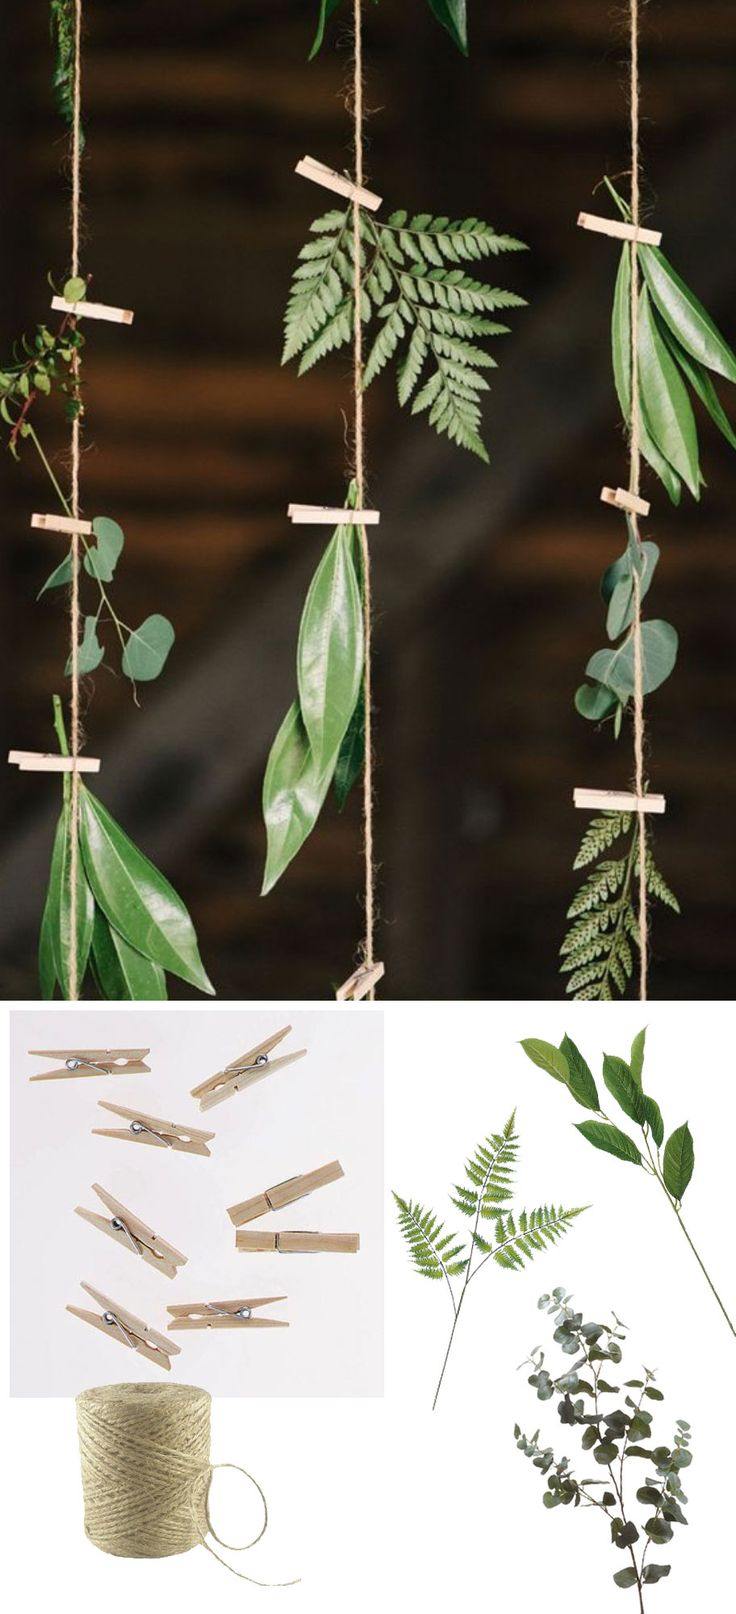 DIY greenery hanging backdrop with twine, clothespins, and faux greenery from afloral.com #diywedding